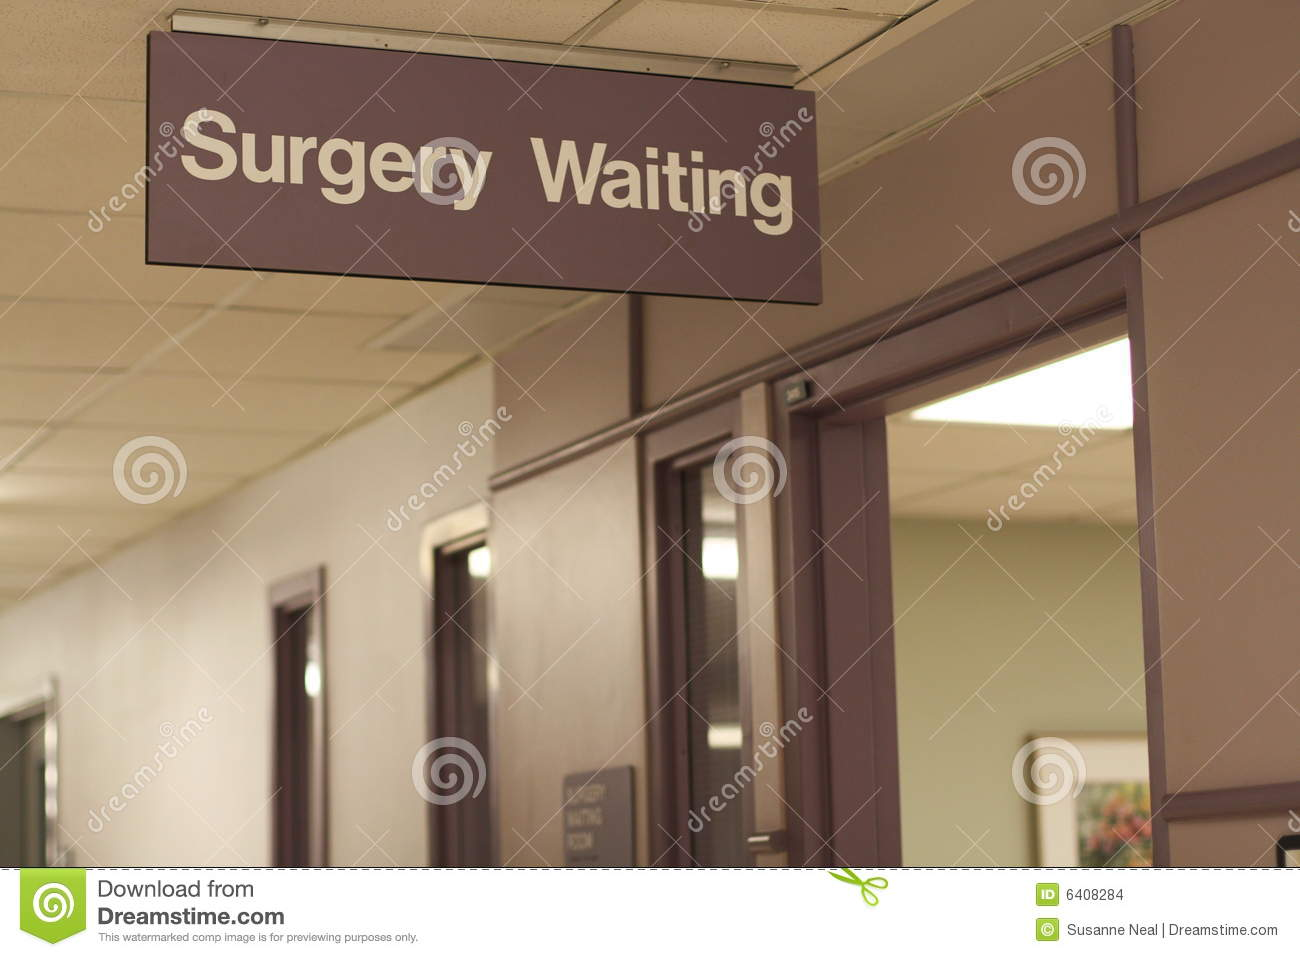 Clean And Shiny >> Hospital Sign: Surgery Waiting Stock Photo - Image of background, healthcare: 6408284